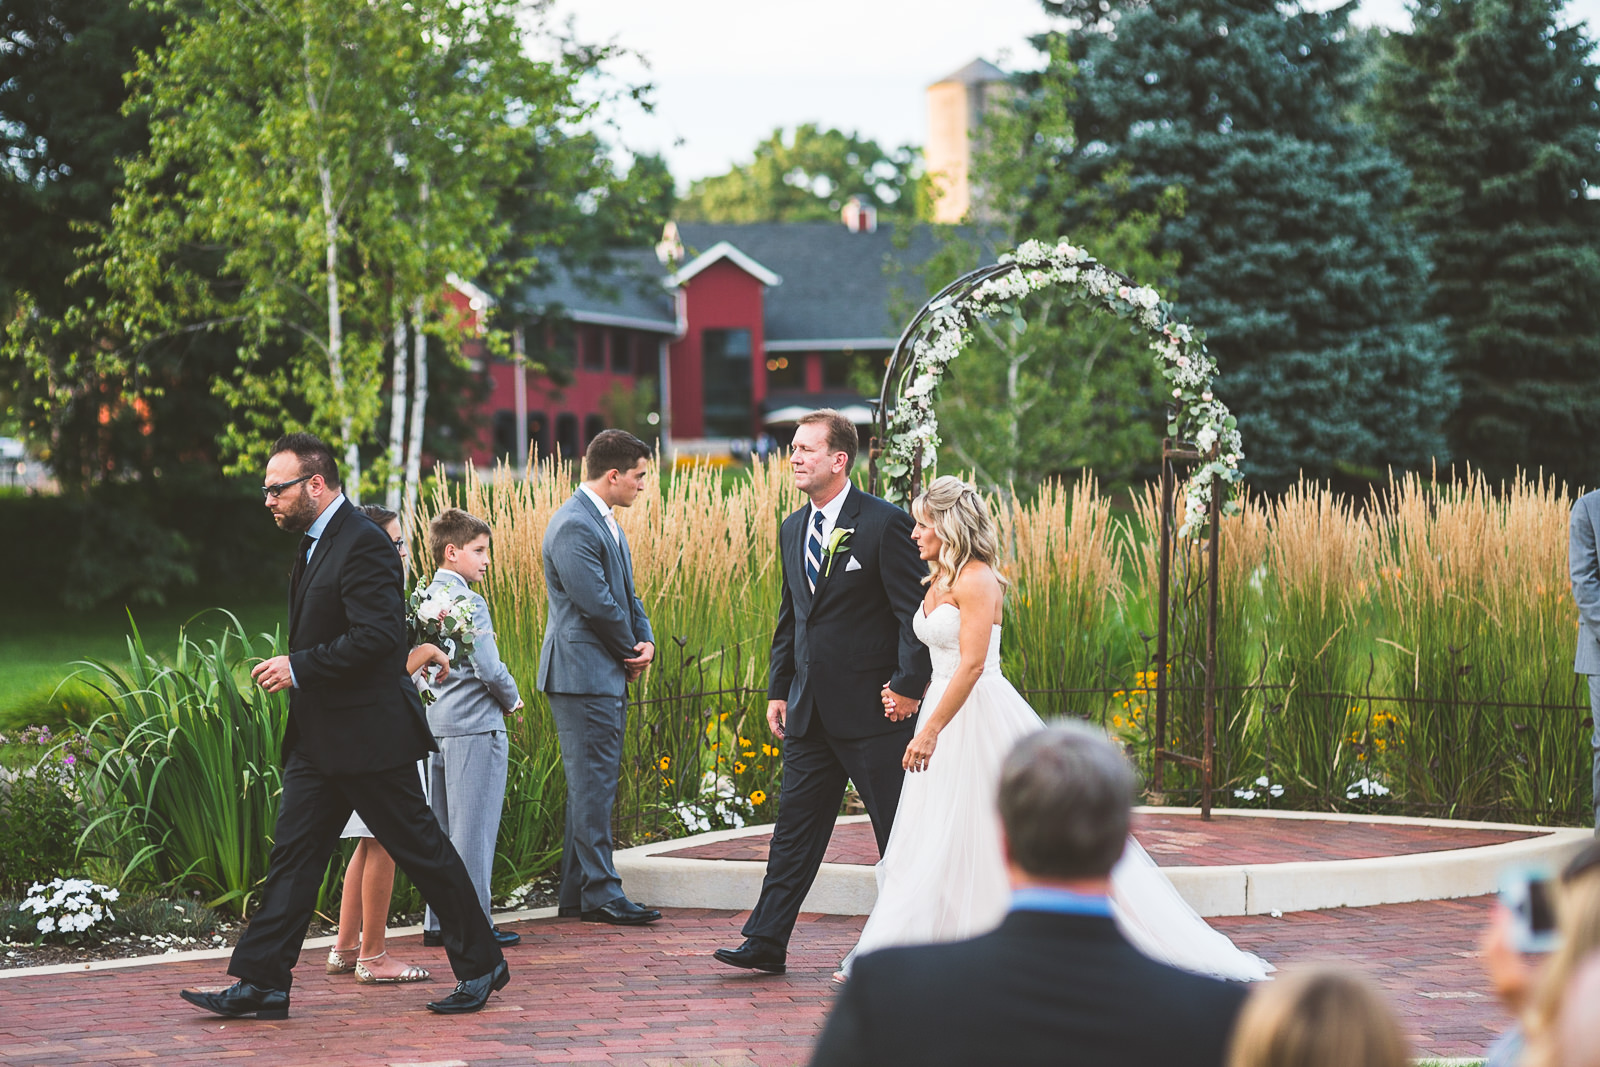 31 walking - Karen + Scott // Fishermens Inn Wedding Photographer Elburn Illinois